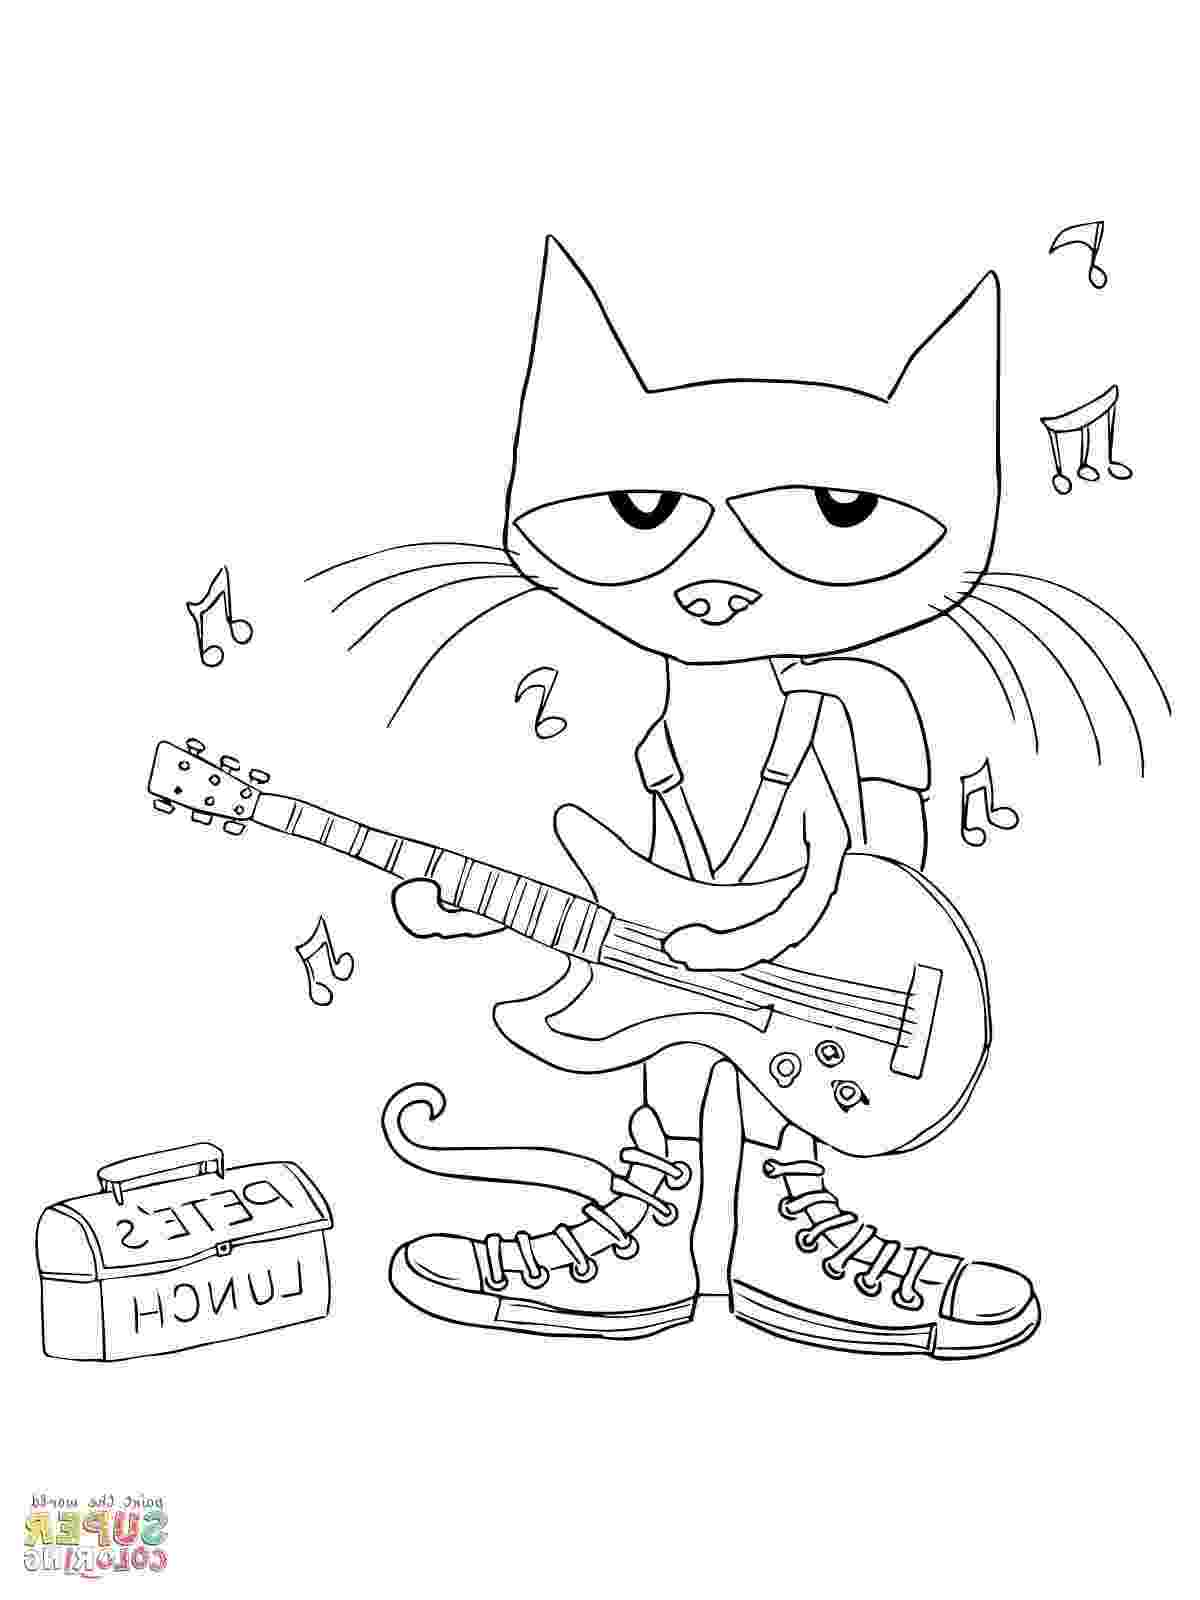 pete the cat coloring page pete the cat coloring pages by kristen coughlan tpt page the coloring pete cat